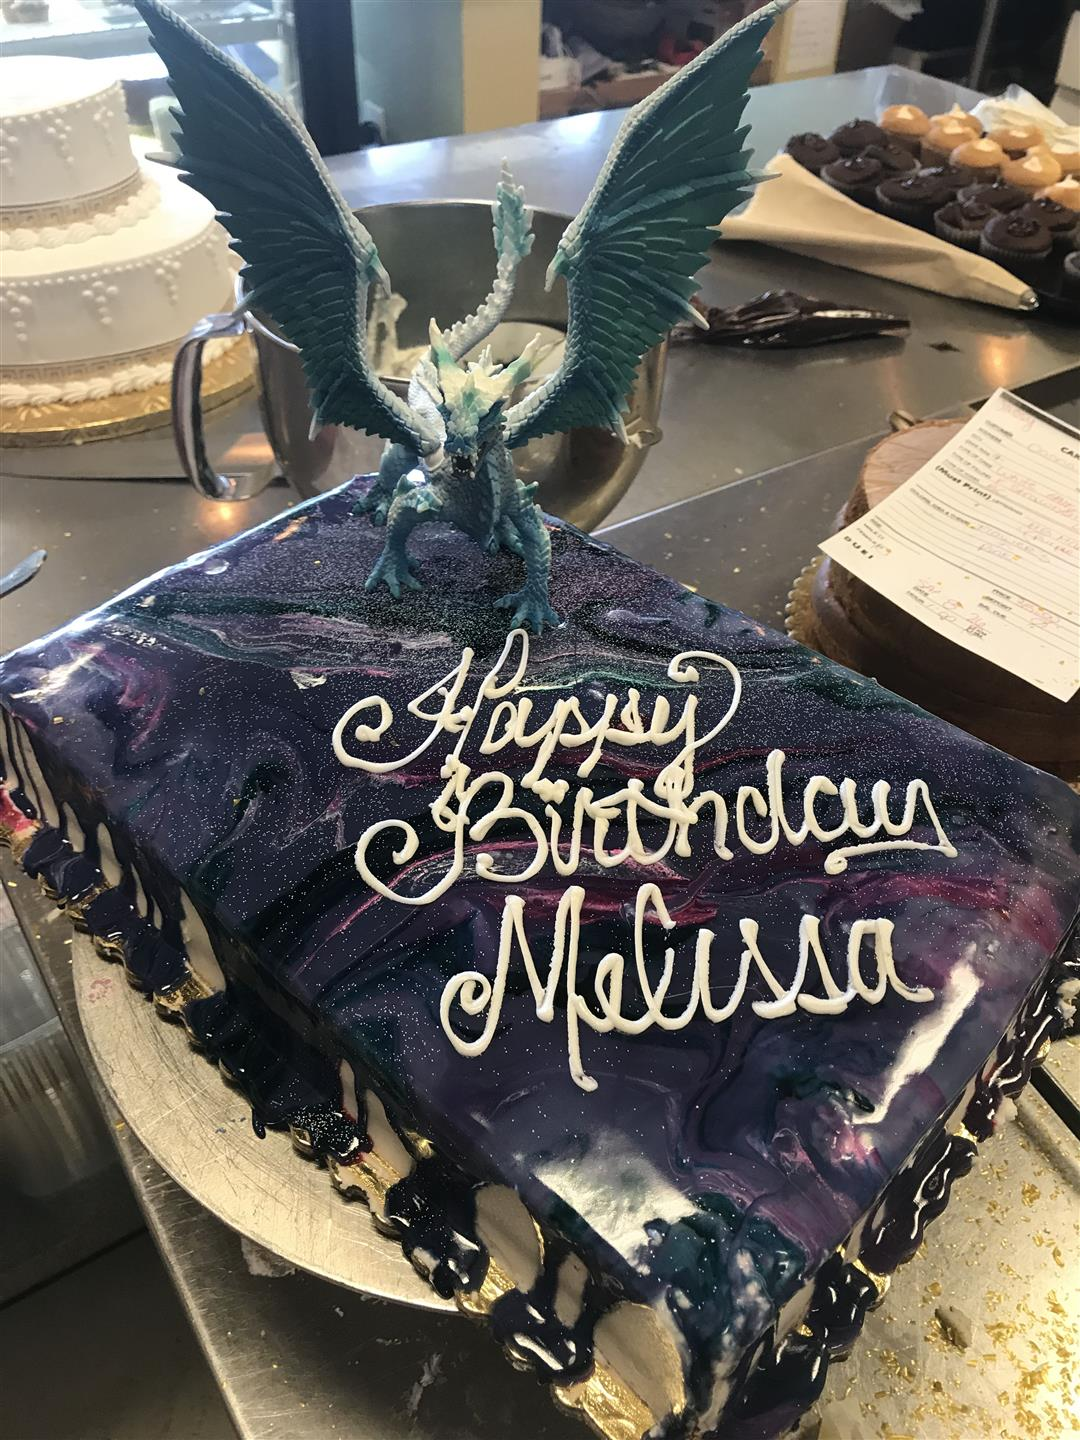 A cake with a dragon on top